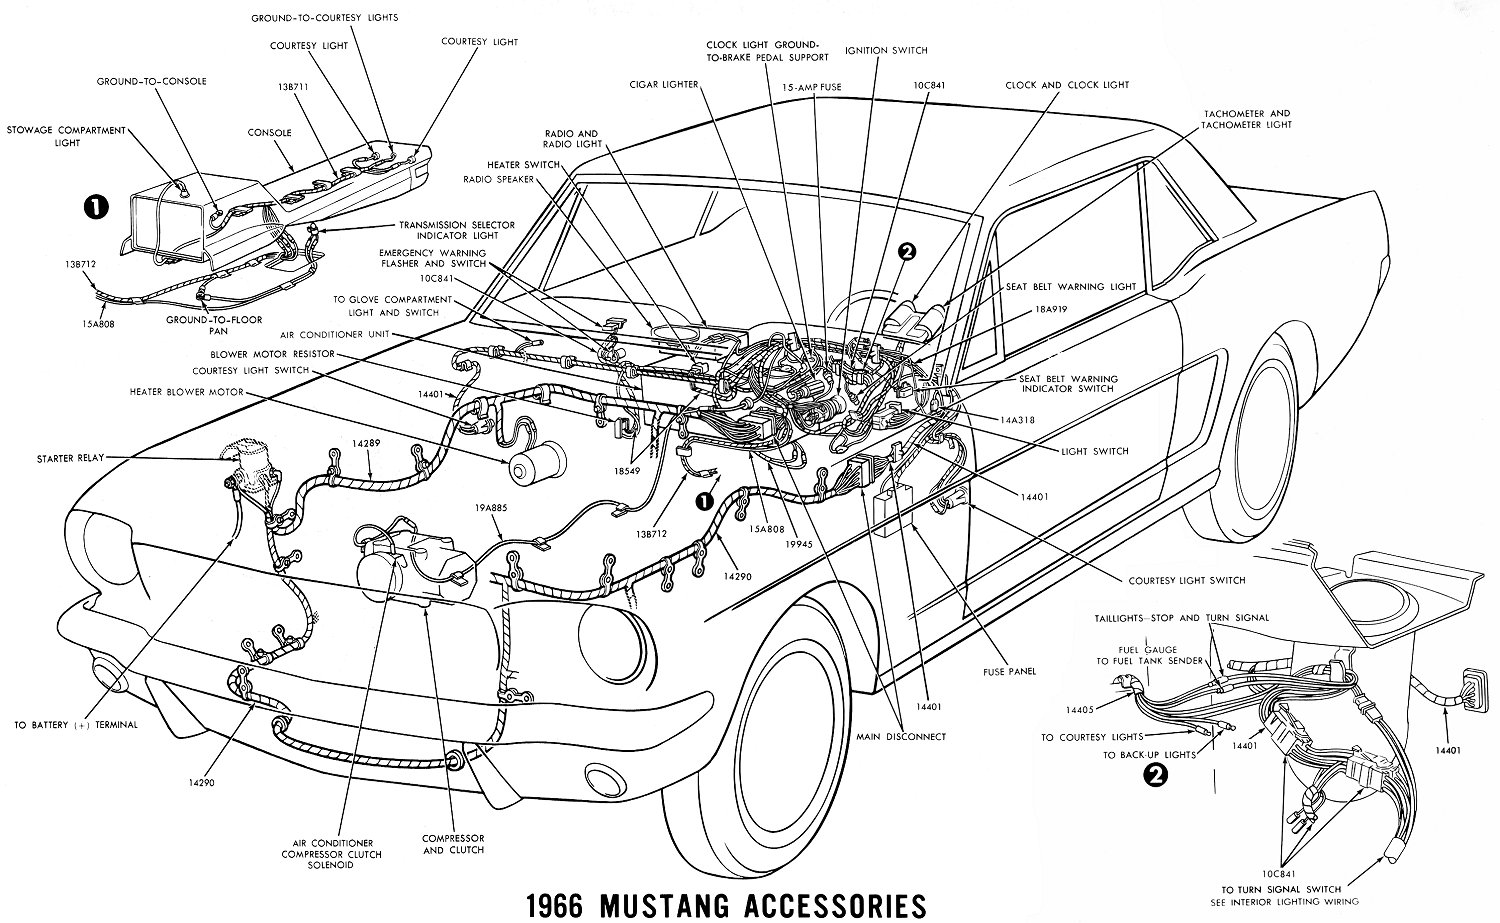 Focus Engine Parts Diagram Wiring Wiring Diagram For Cars Pertaining To Ford Focus Engine Parts Diagram together with 1291582 Duraspark 2 Tachometer Wiring additionally Nissan Versa Fuel Wiring Diagram further Discussion C2786 ds637403 in addition Powerheated Mirrors Wiring Diagram Of 2007 Nissan Titan Part 2. on nissan car starter